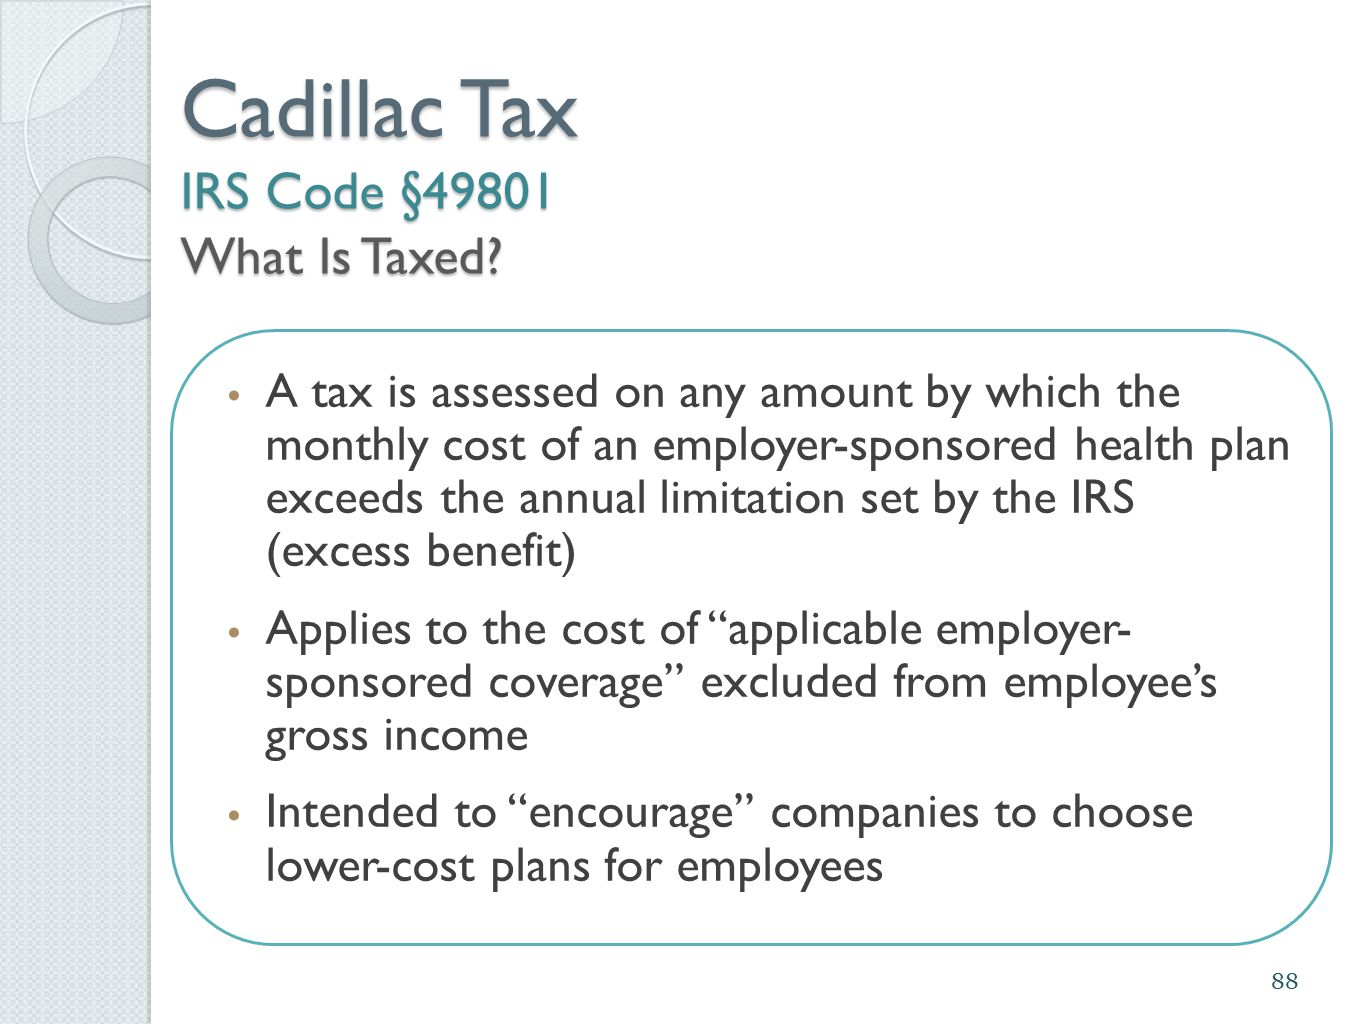 Cadillac Tax IRS Code § 49801 What Is Taxed? A tax is assessed on any amount by which the monthly cost of an employer-sponsored health plan exceeds th